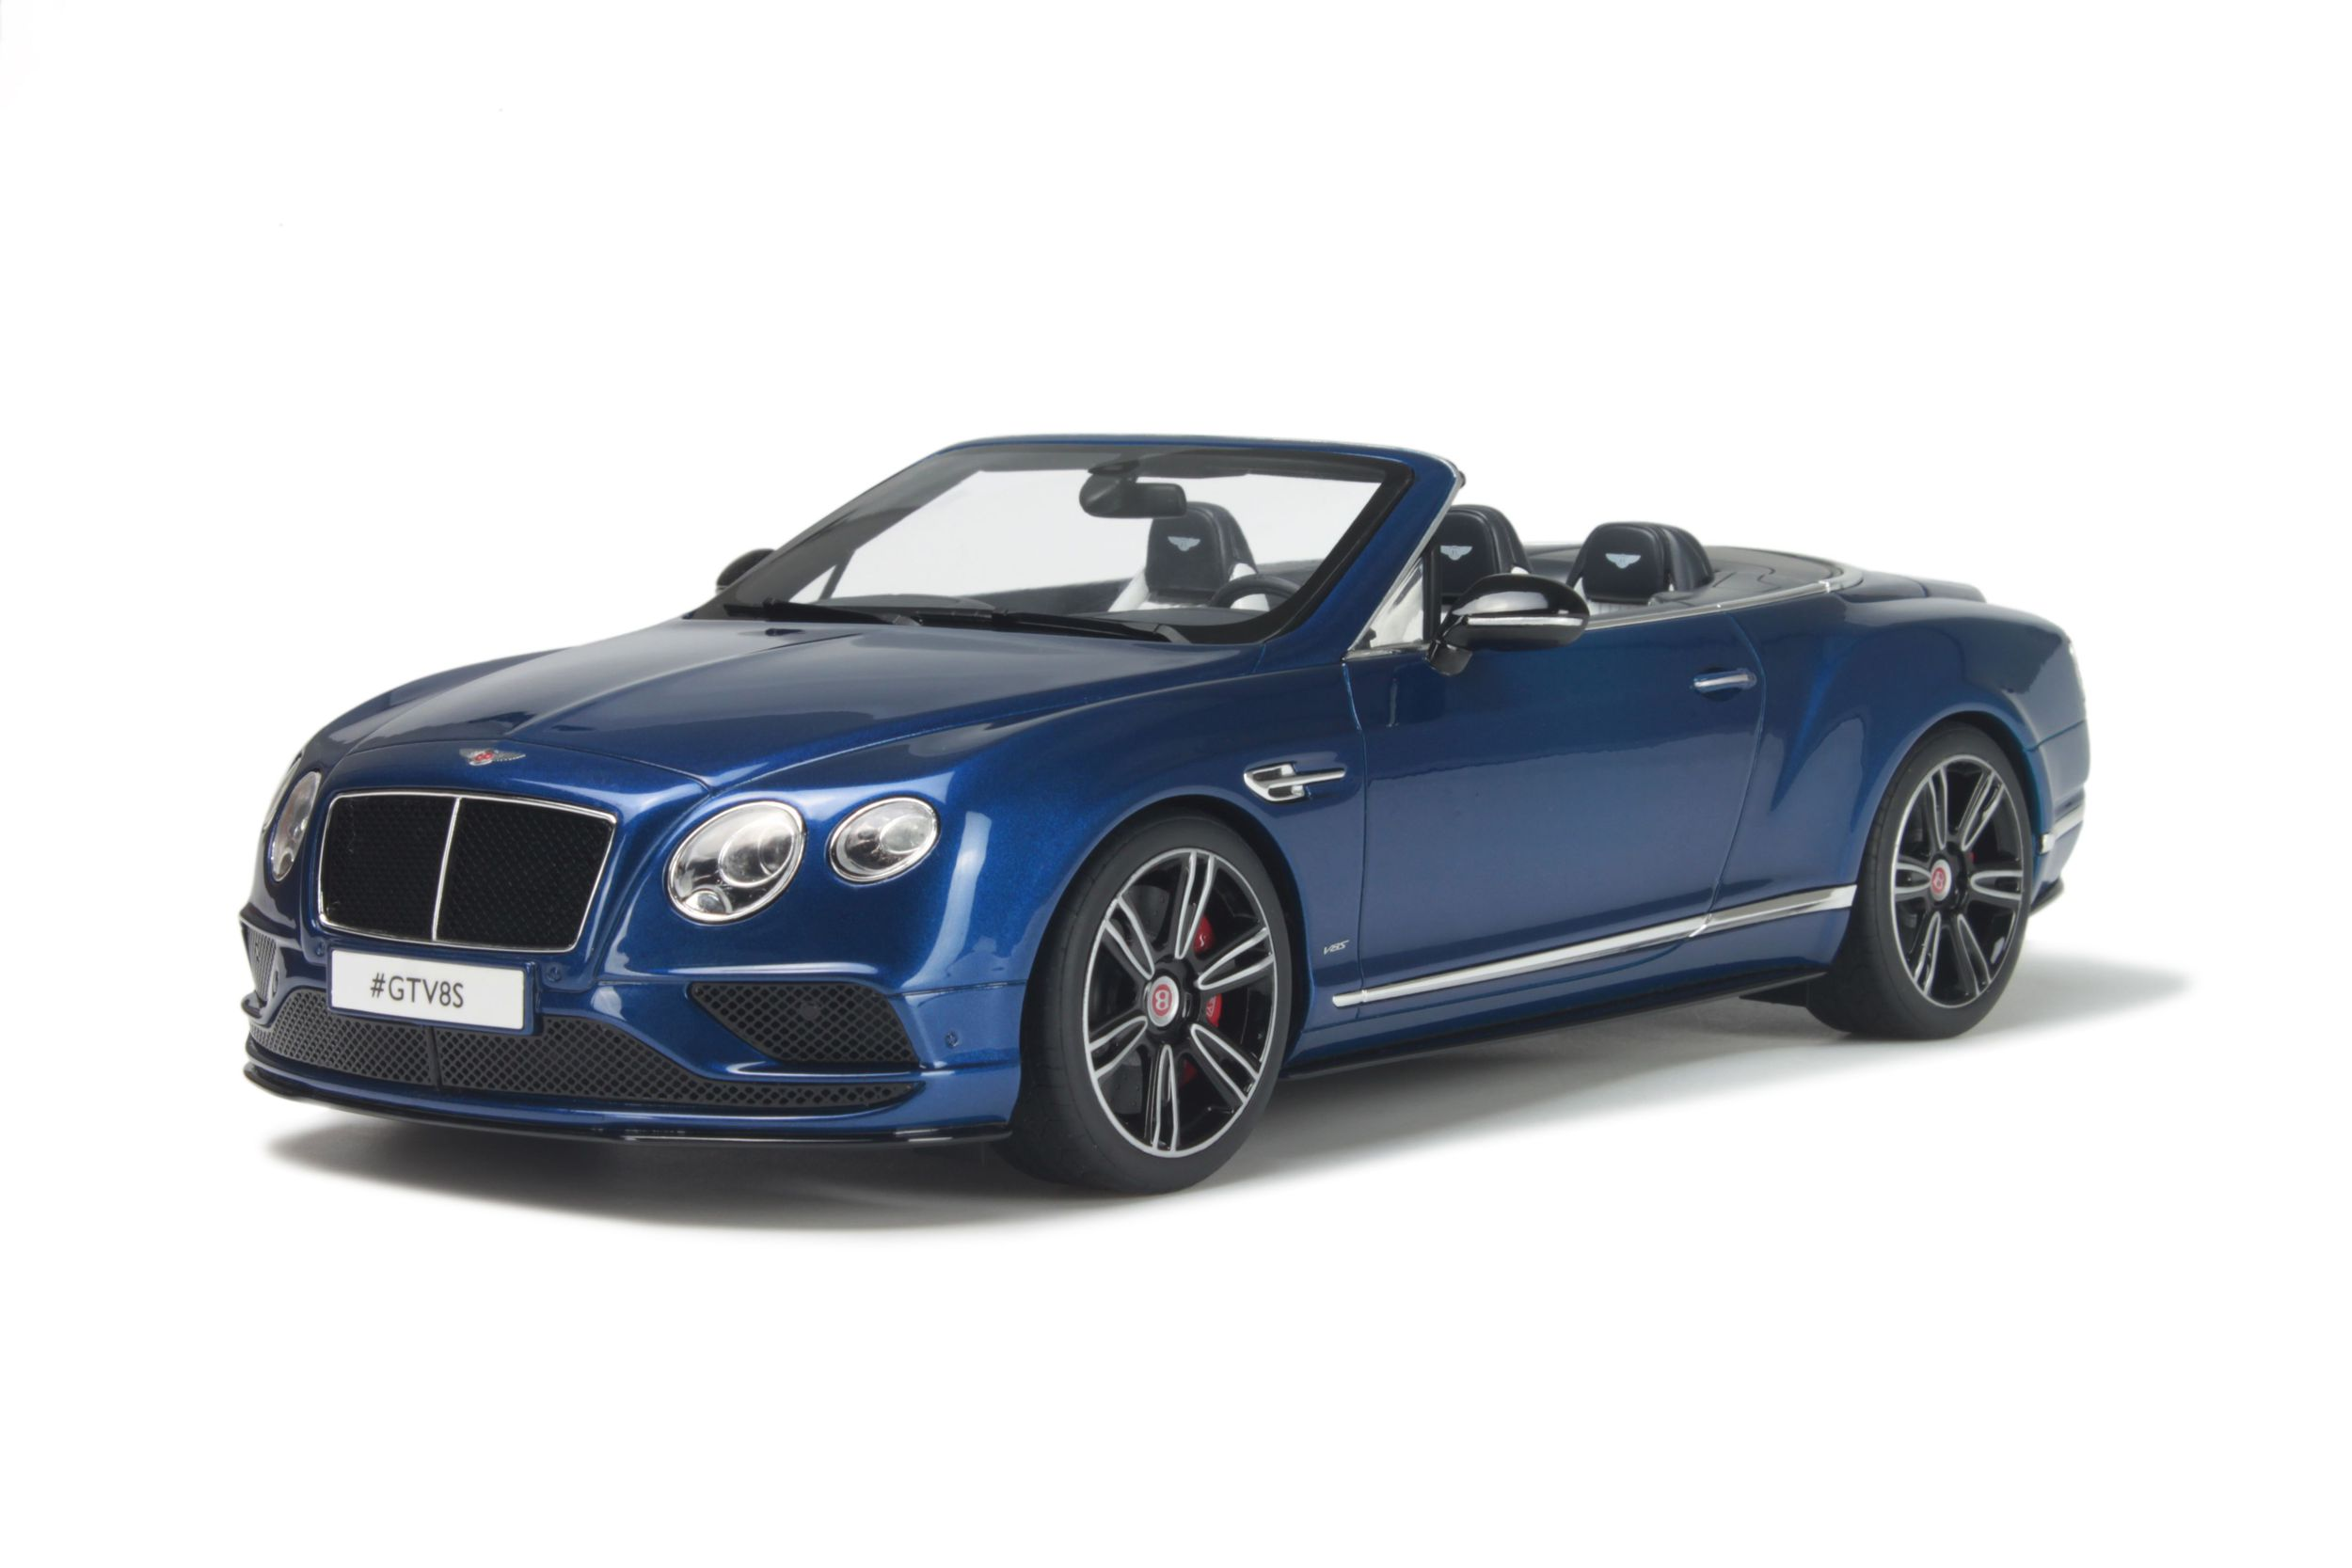 Bentley Continental Gt V8 S Cabriolet Model Car Collection Gt Spirit